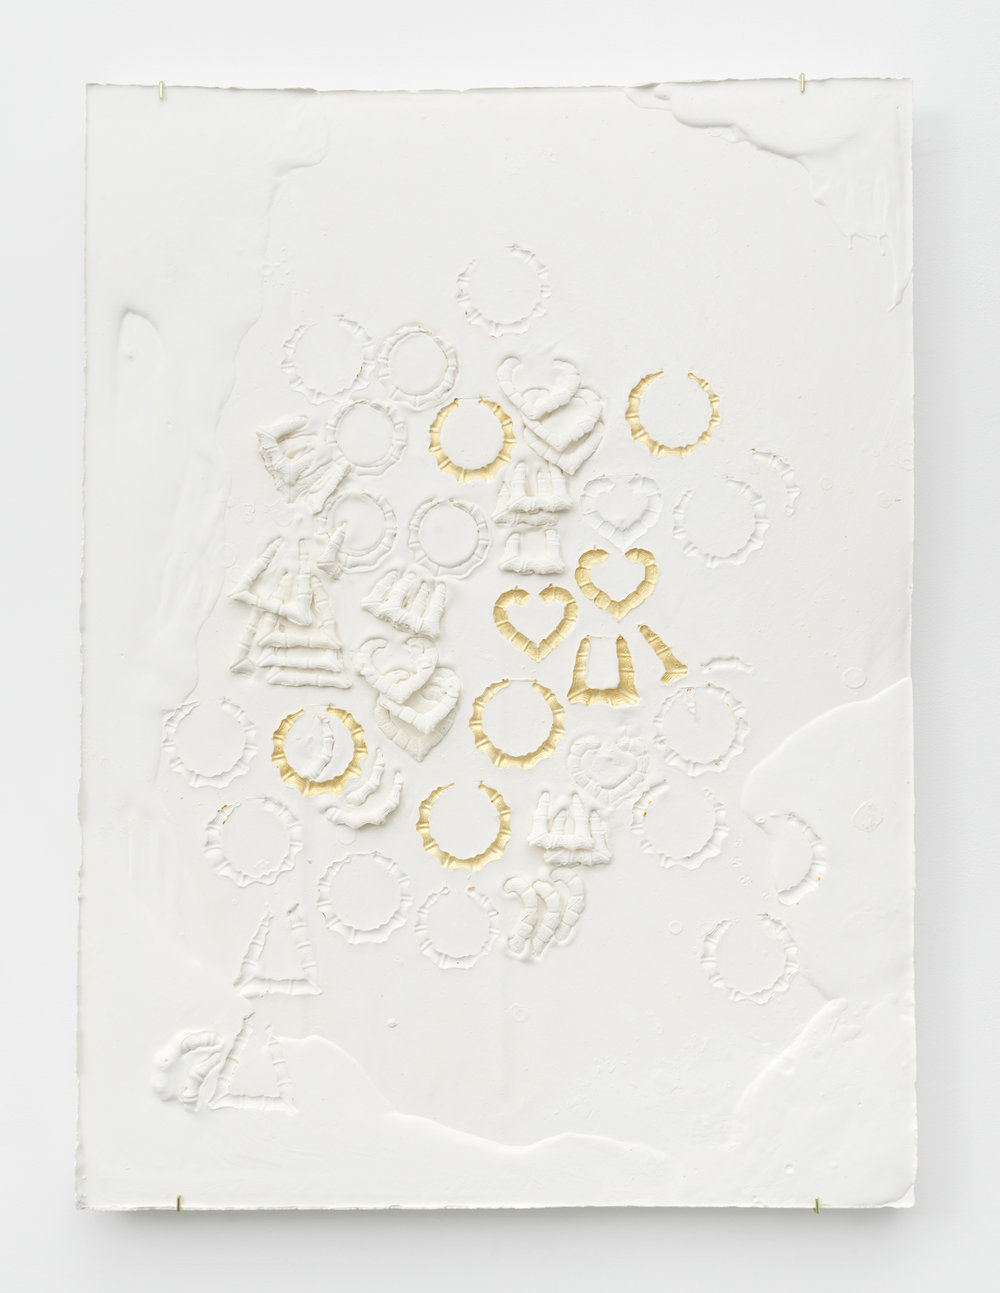 Composition with Round Heart and Triangle Bamboo Earrings, Impressed with Gold  Plaster, foam and acrylic 46 x 34 x 3 inches, 116.84 x 86.36 x 7.62 cm 2019